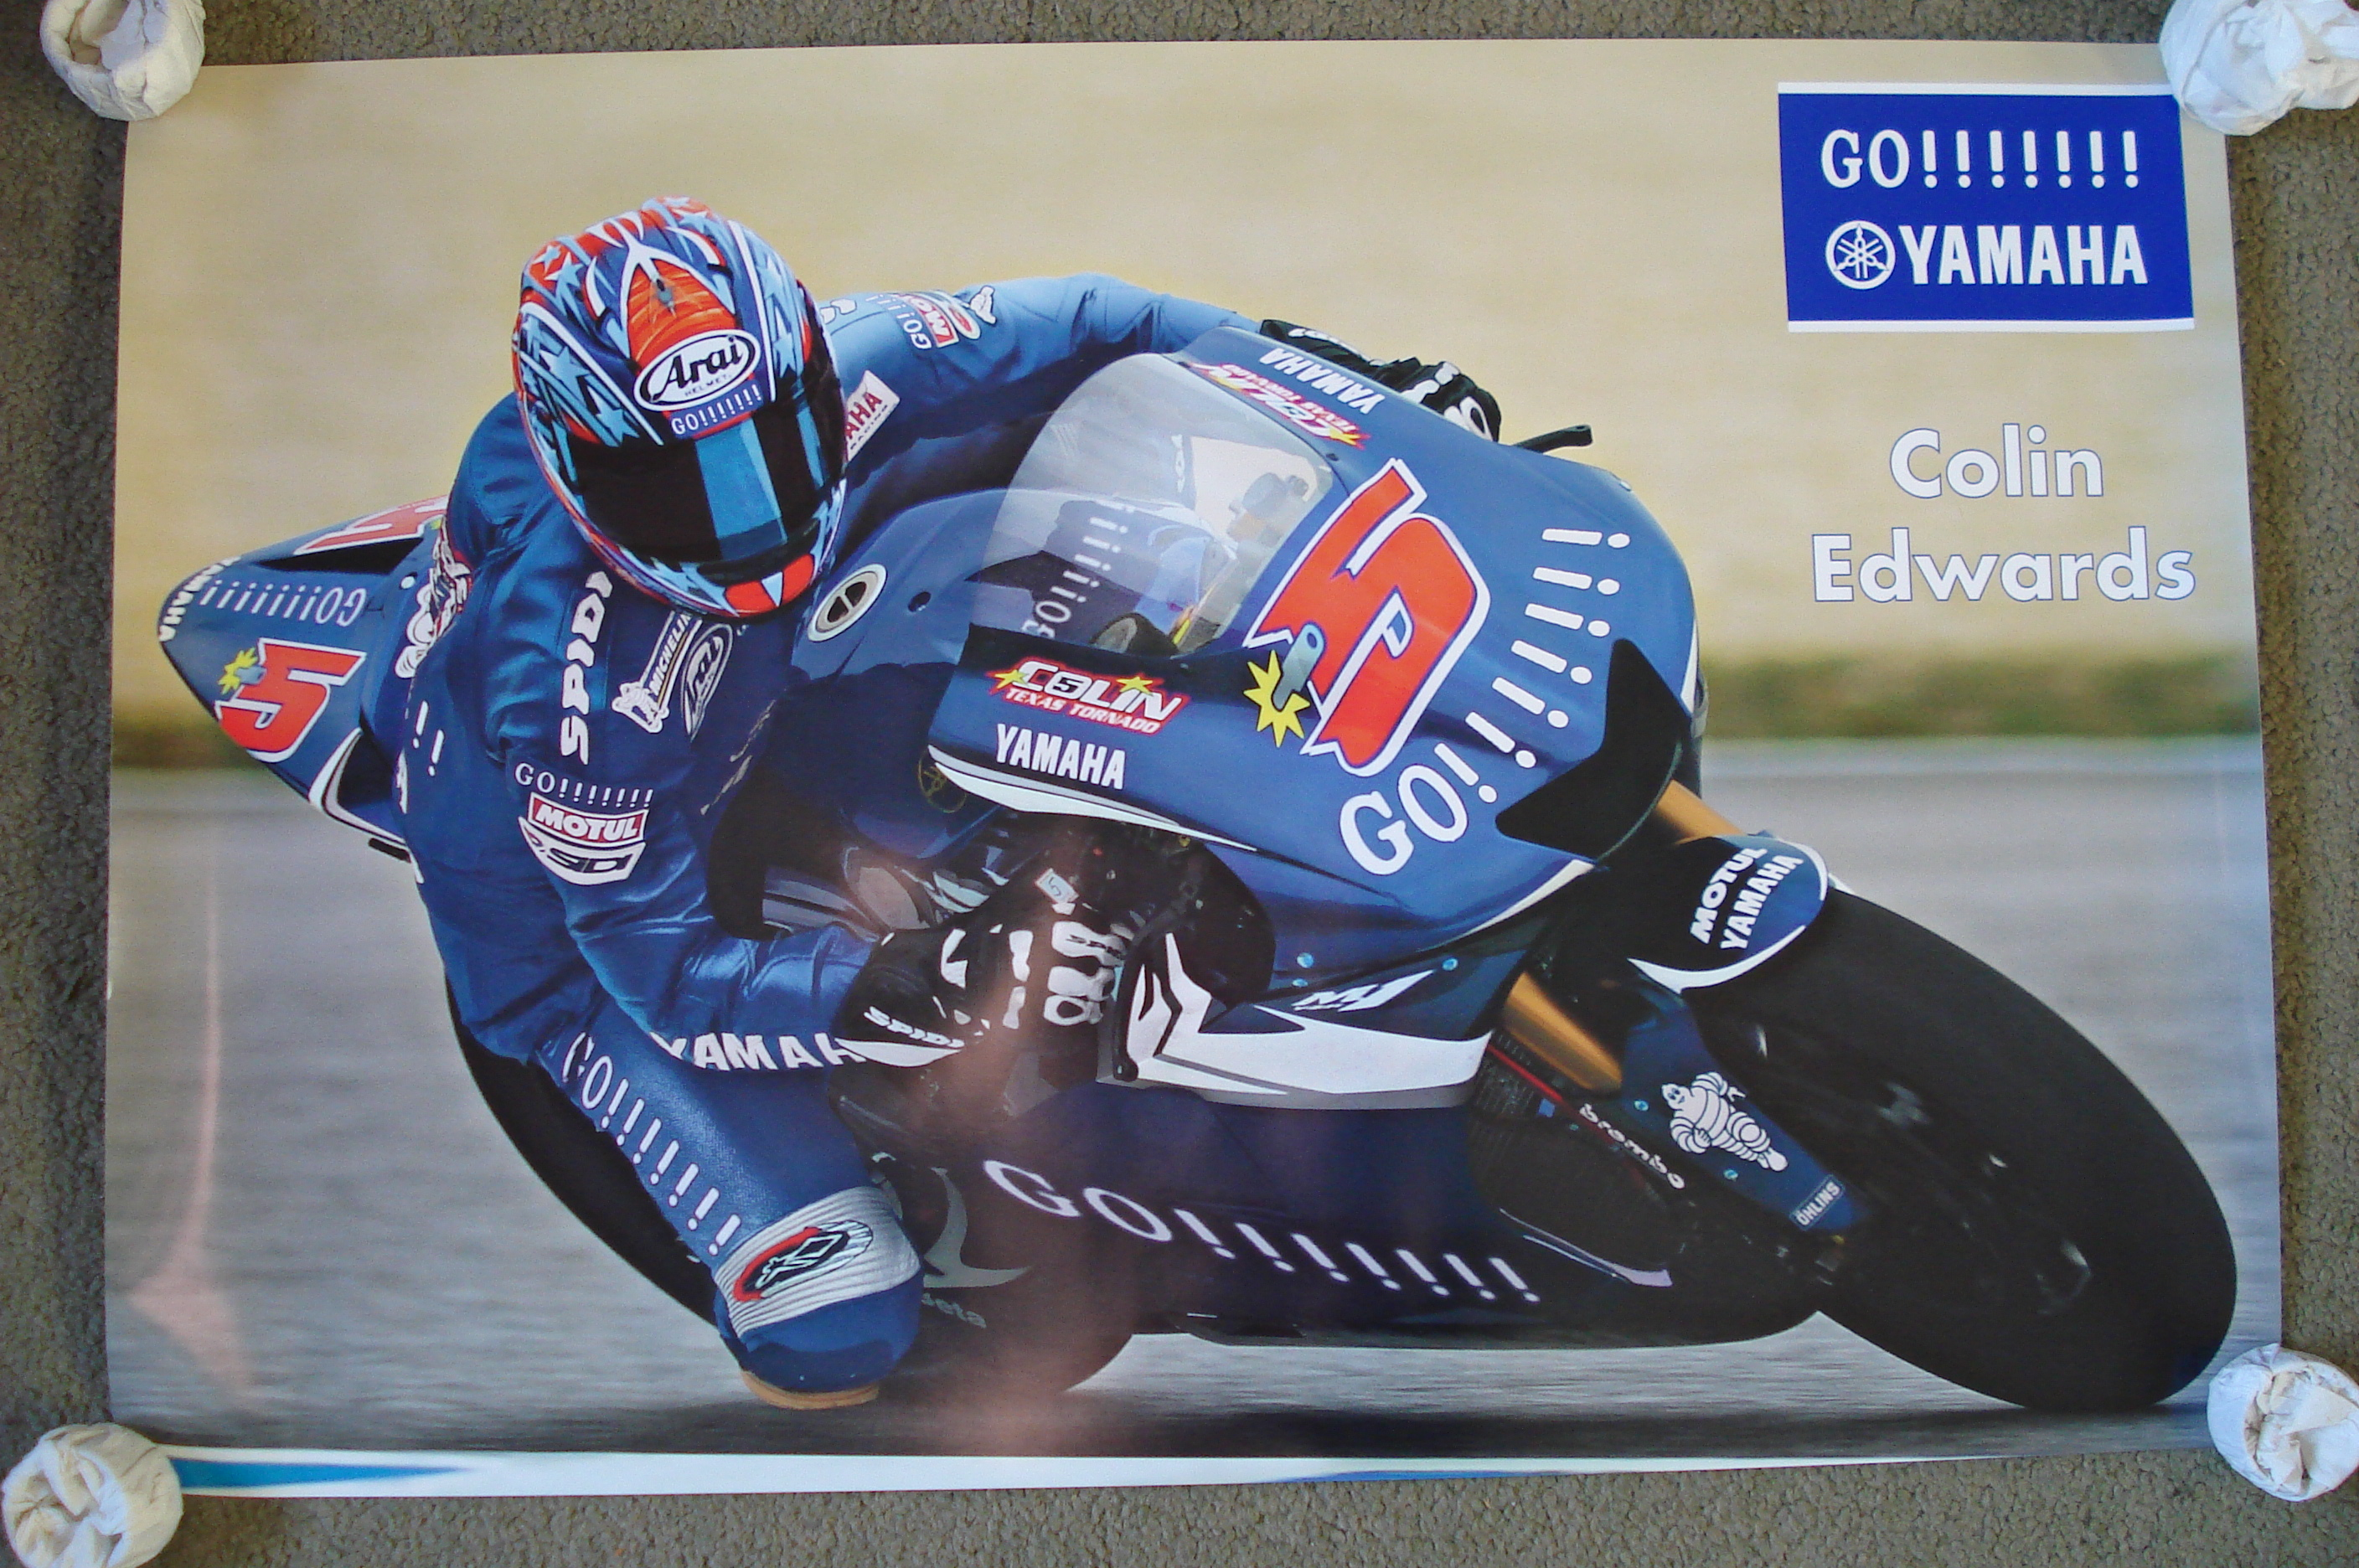 Colin Edwards Yamaha Team Poster